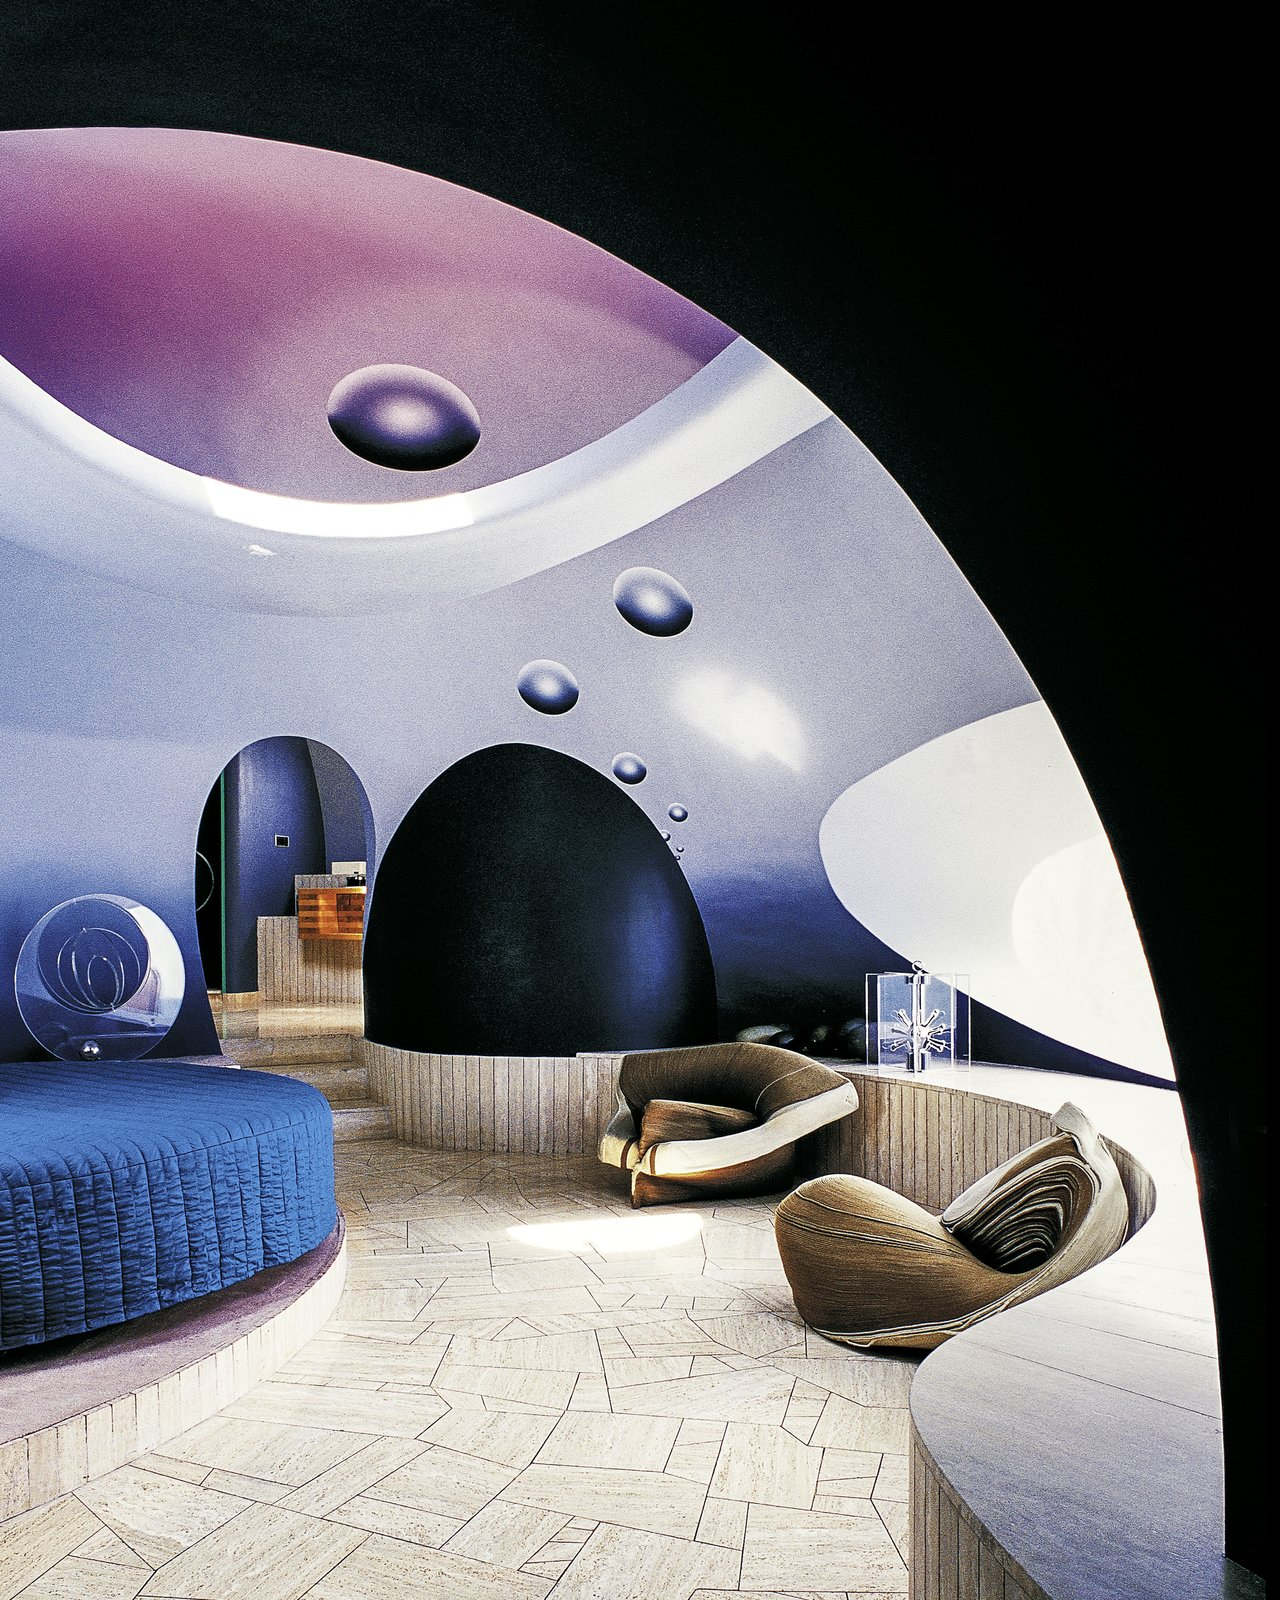 Palais Bulles, Théoule-sur-Mer, France - Antti Love, 1989  Photo 7 of 11 in A New Book Celebrates Modernism With Futuristic Homes and Visionary Masterpieces